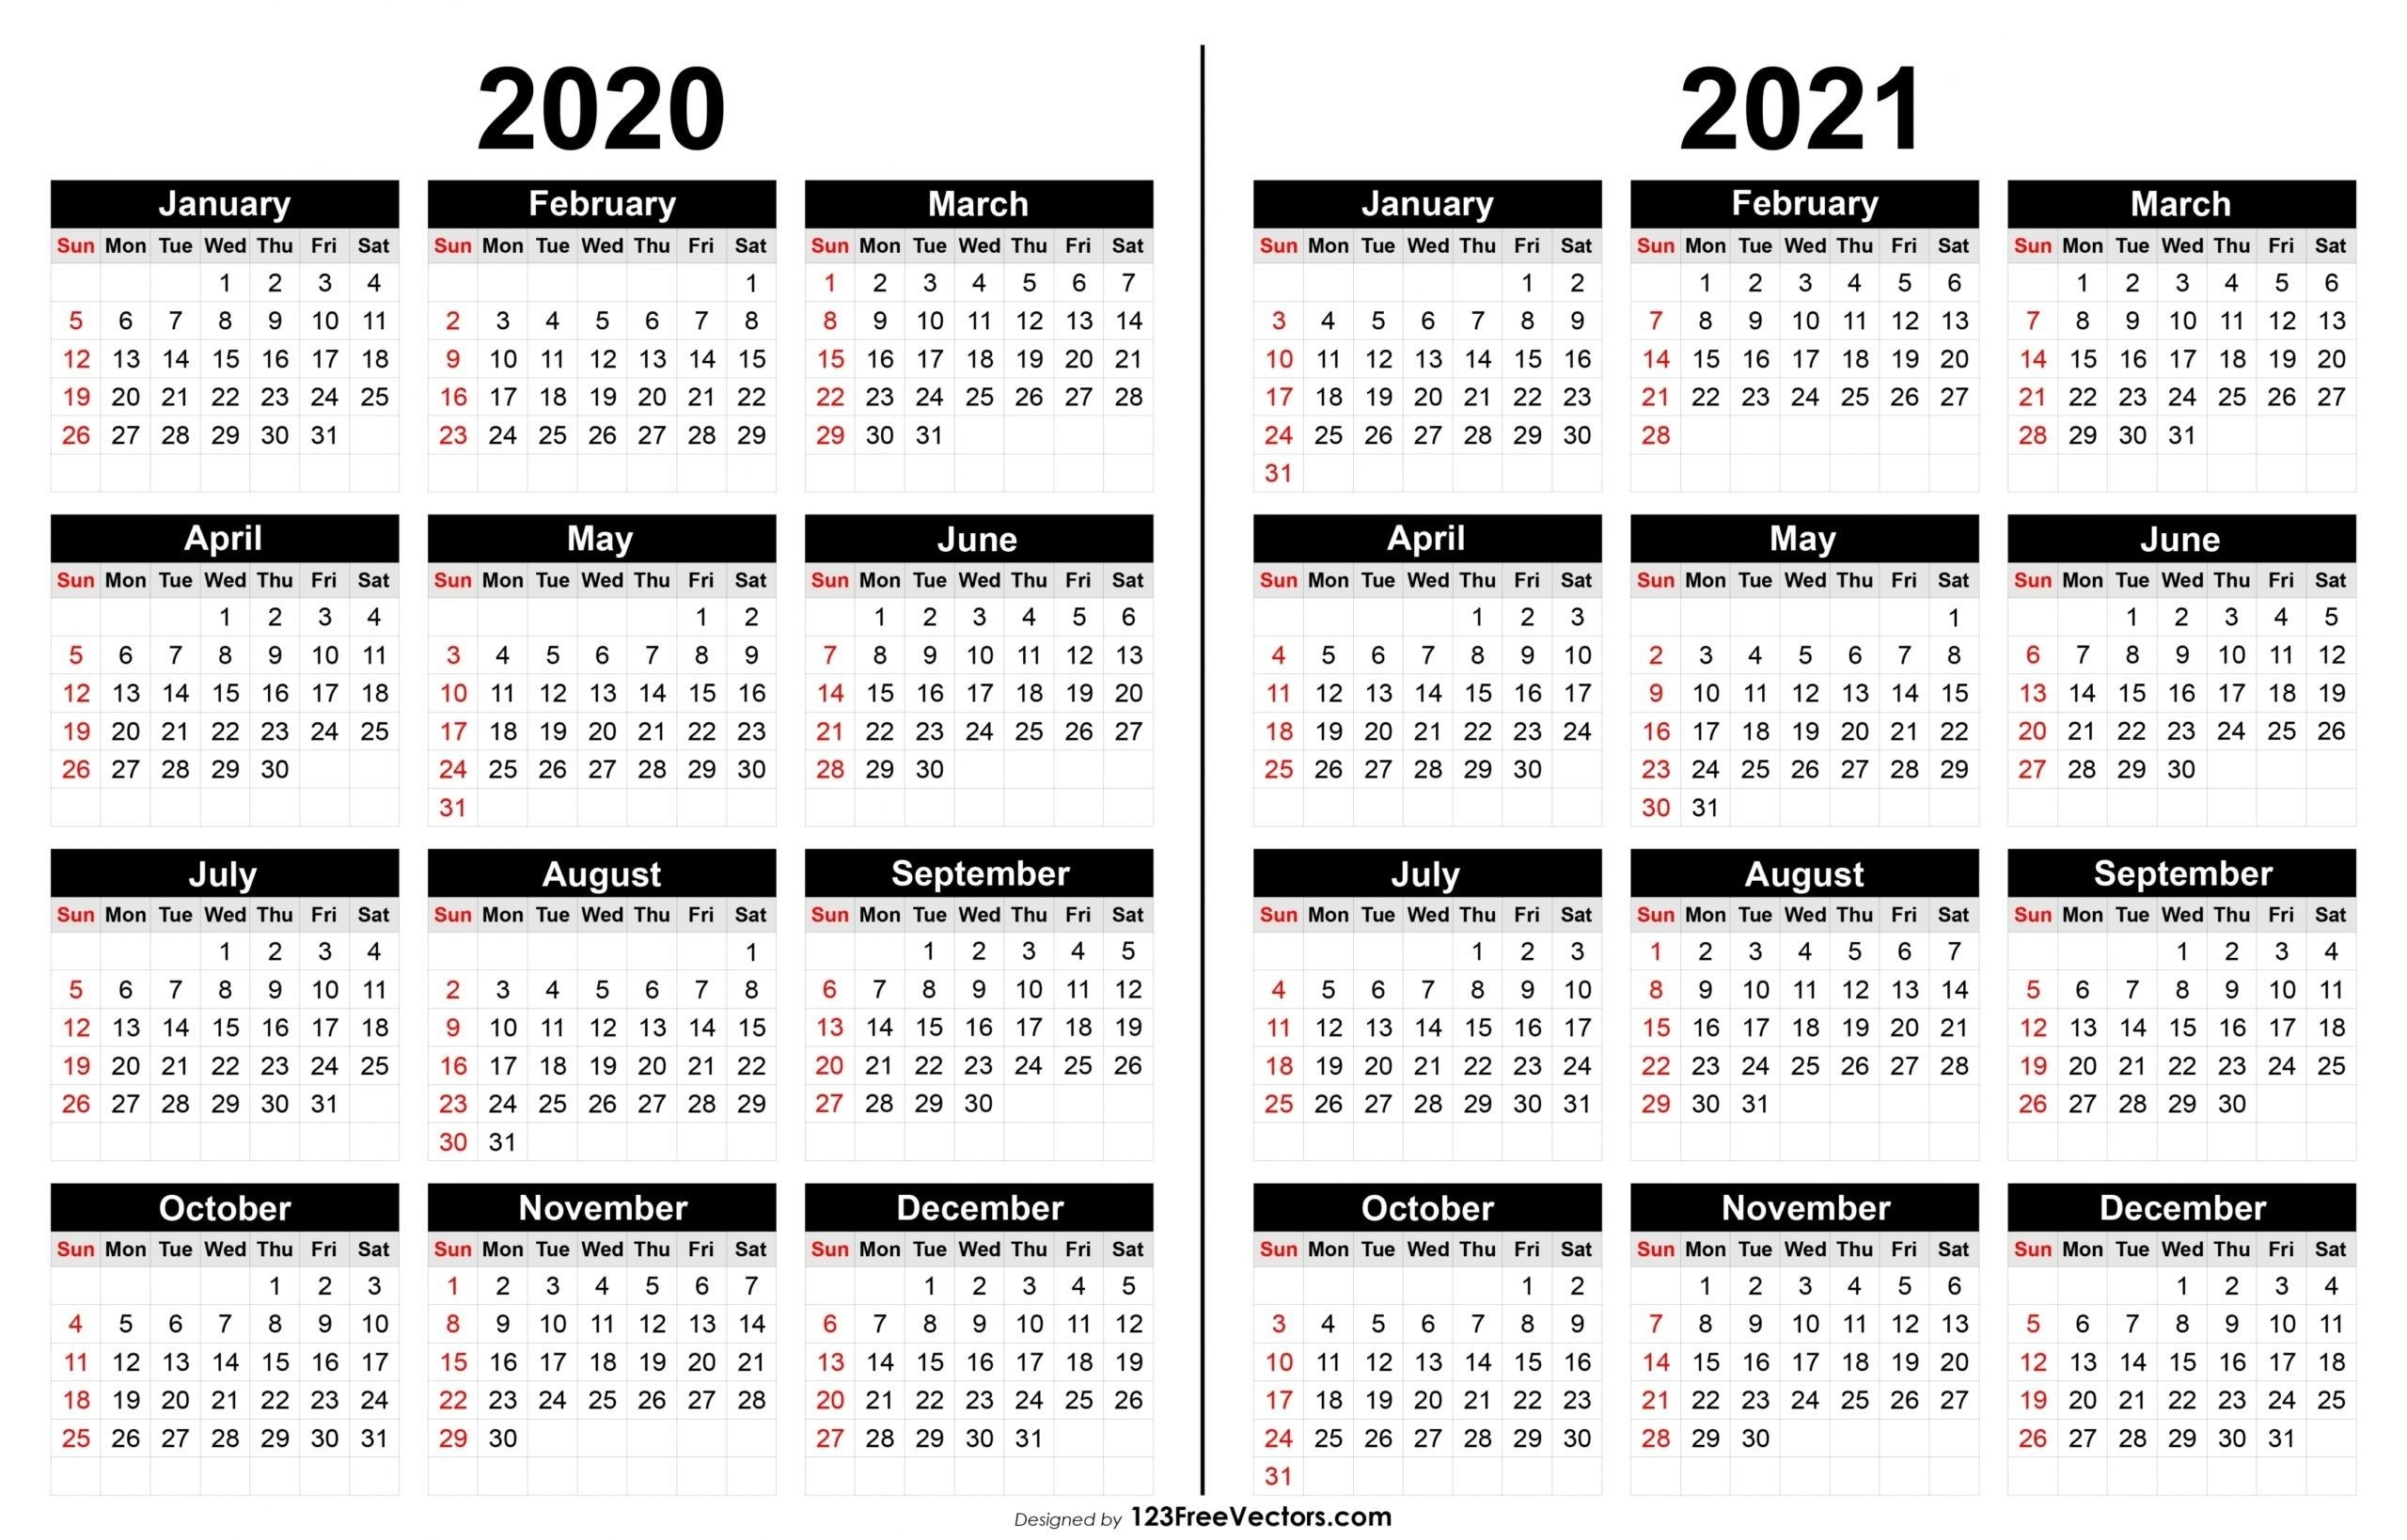 2021 print free calendars without downloading | calendar